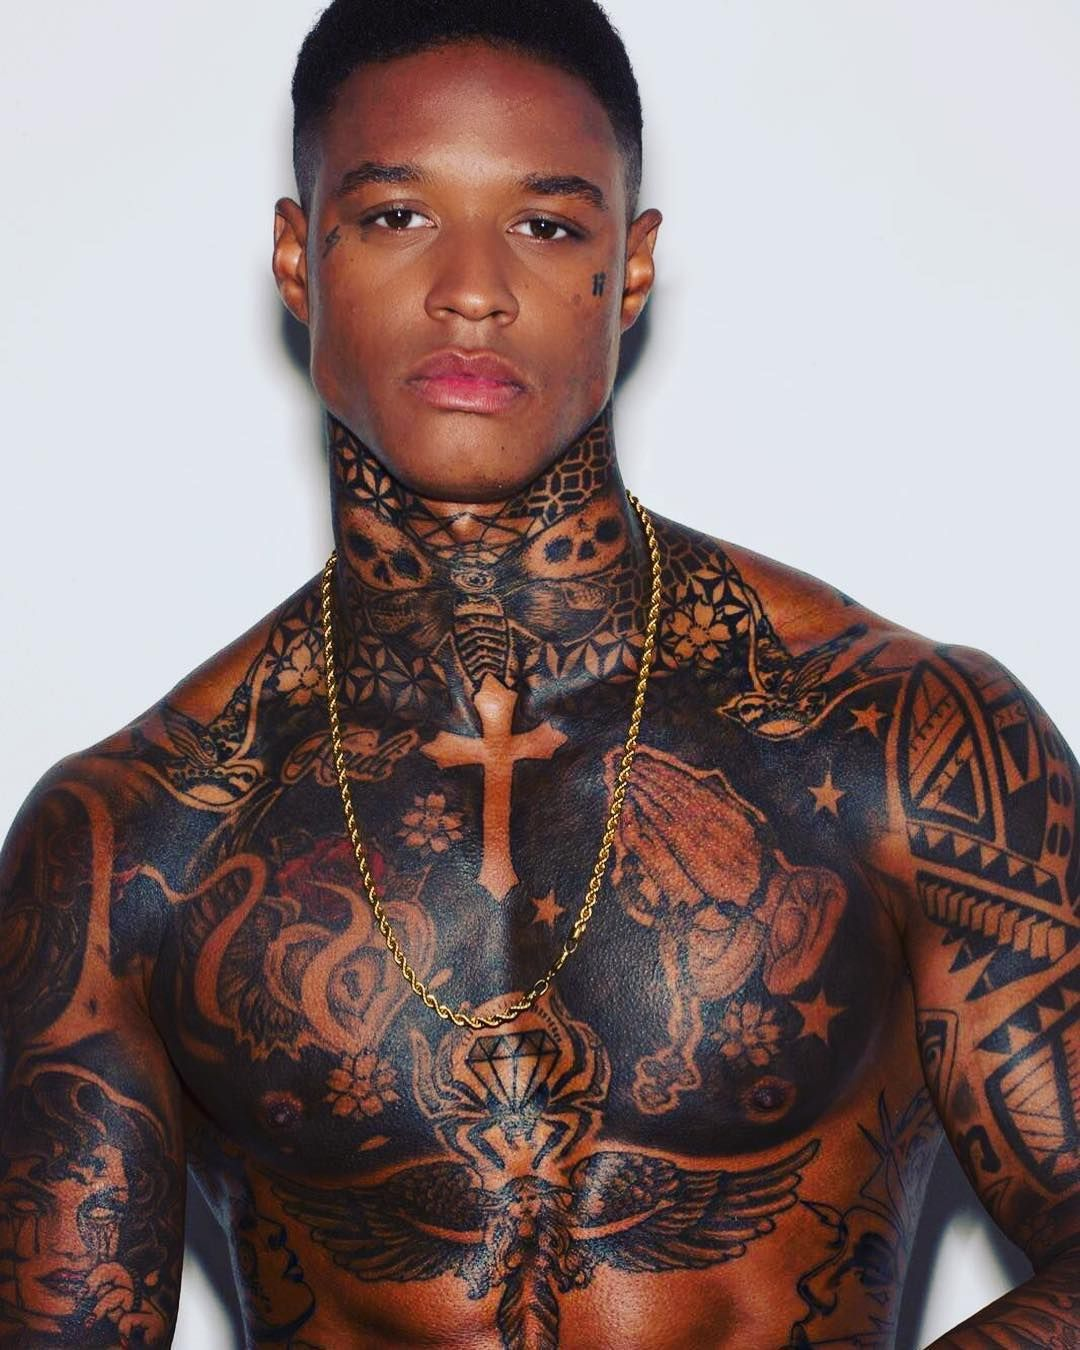 Black Men With Tattoos : black, tattoos, Tattoo, Decoration